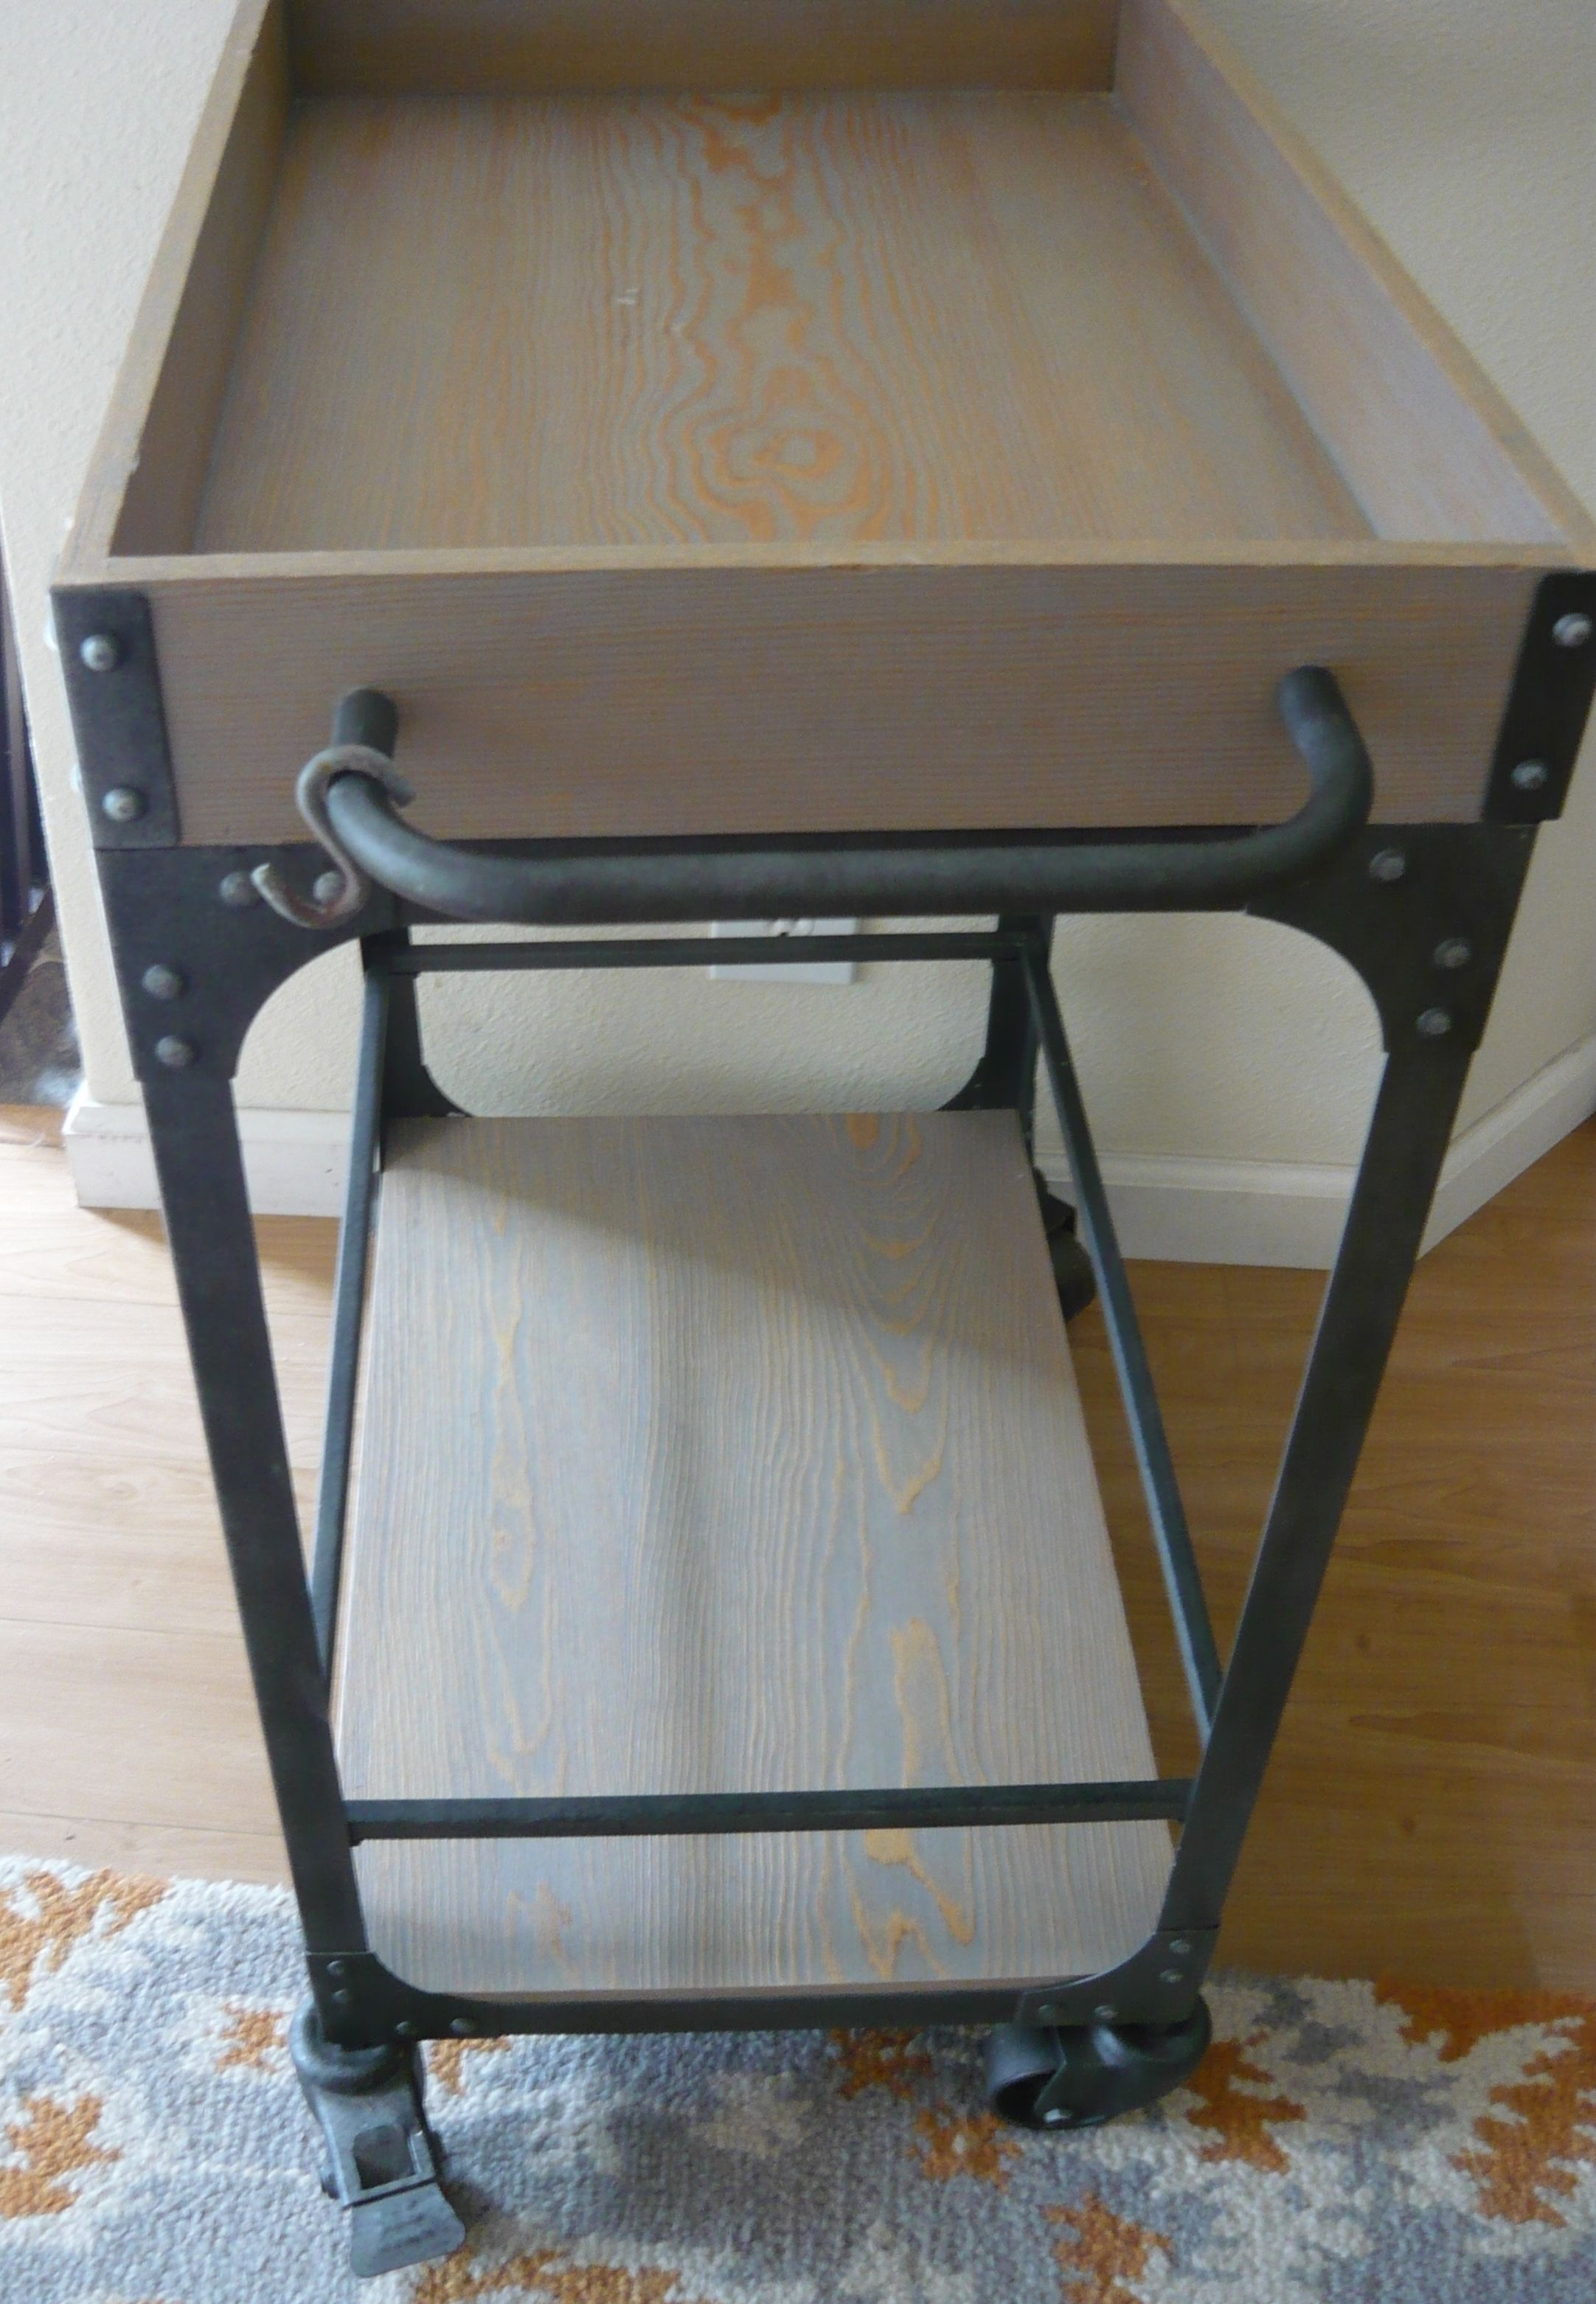 BAR CART with Glass' Rack $40 Retails at $128 image 2